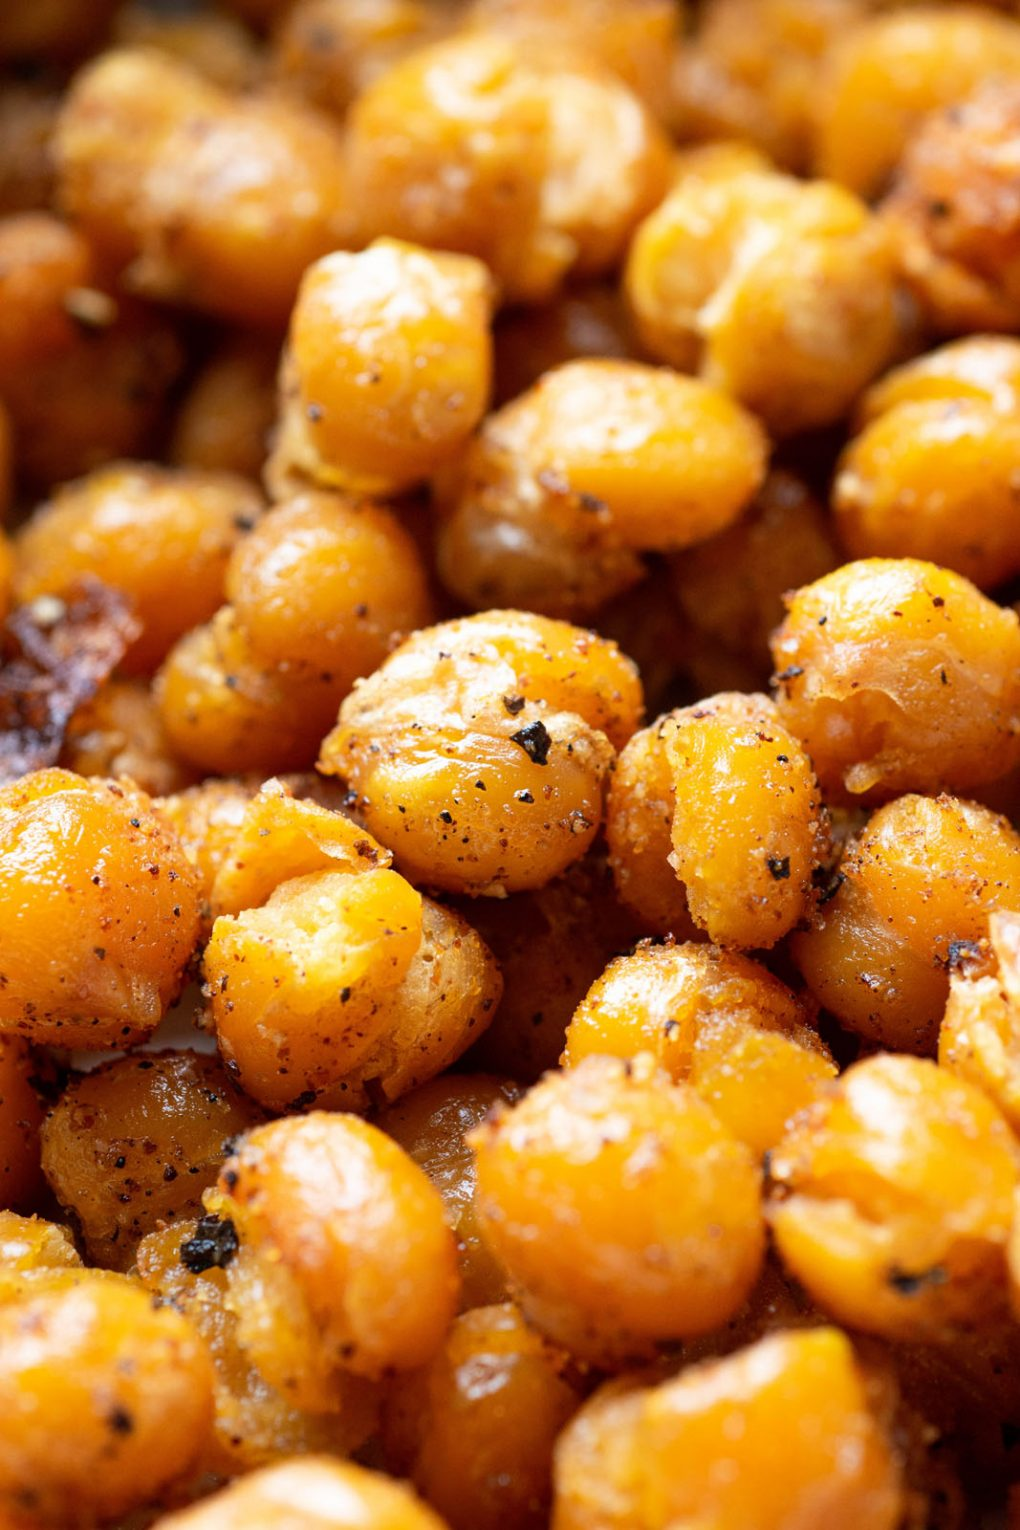 Super close up shot of browned and crispy roasted chickpeas.